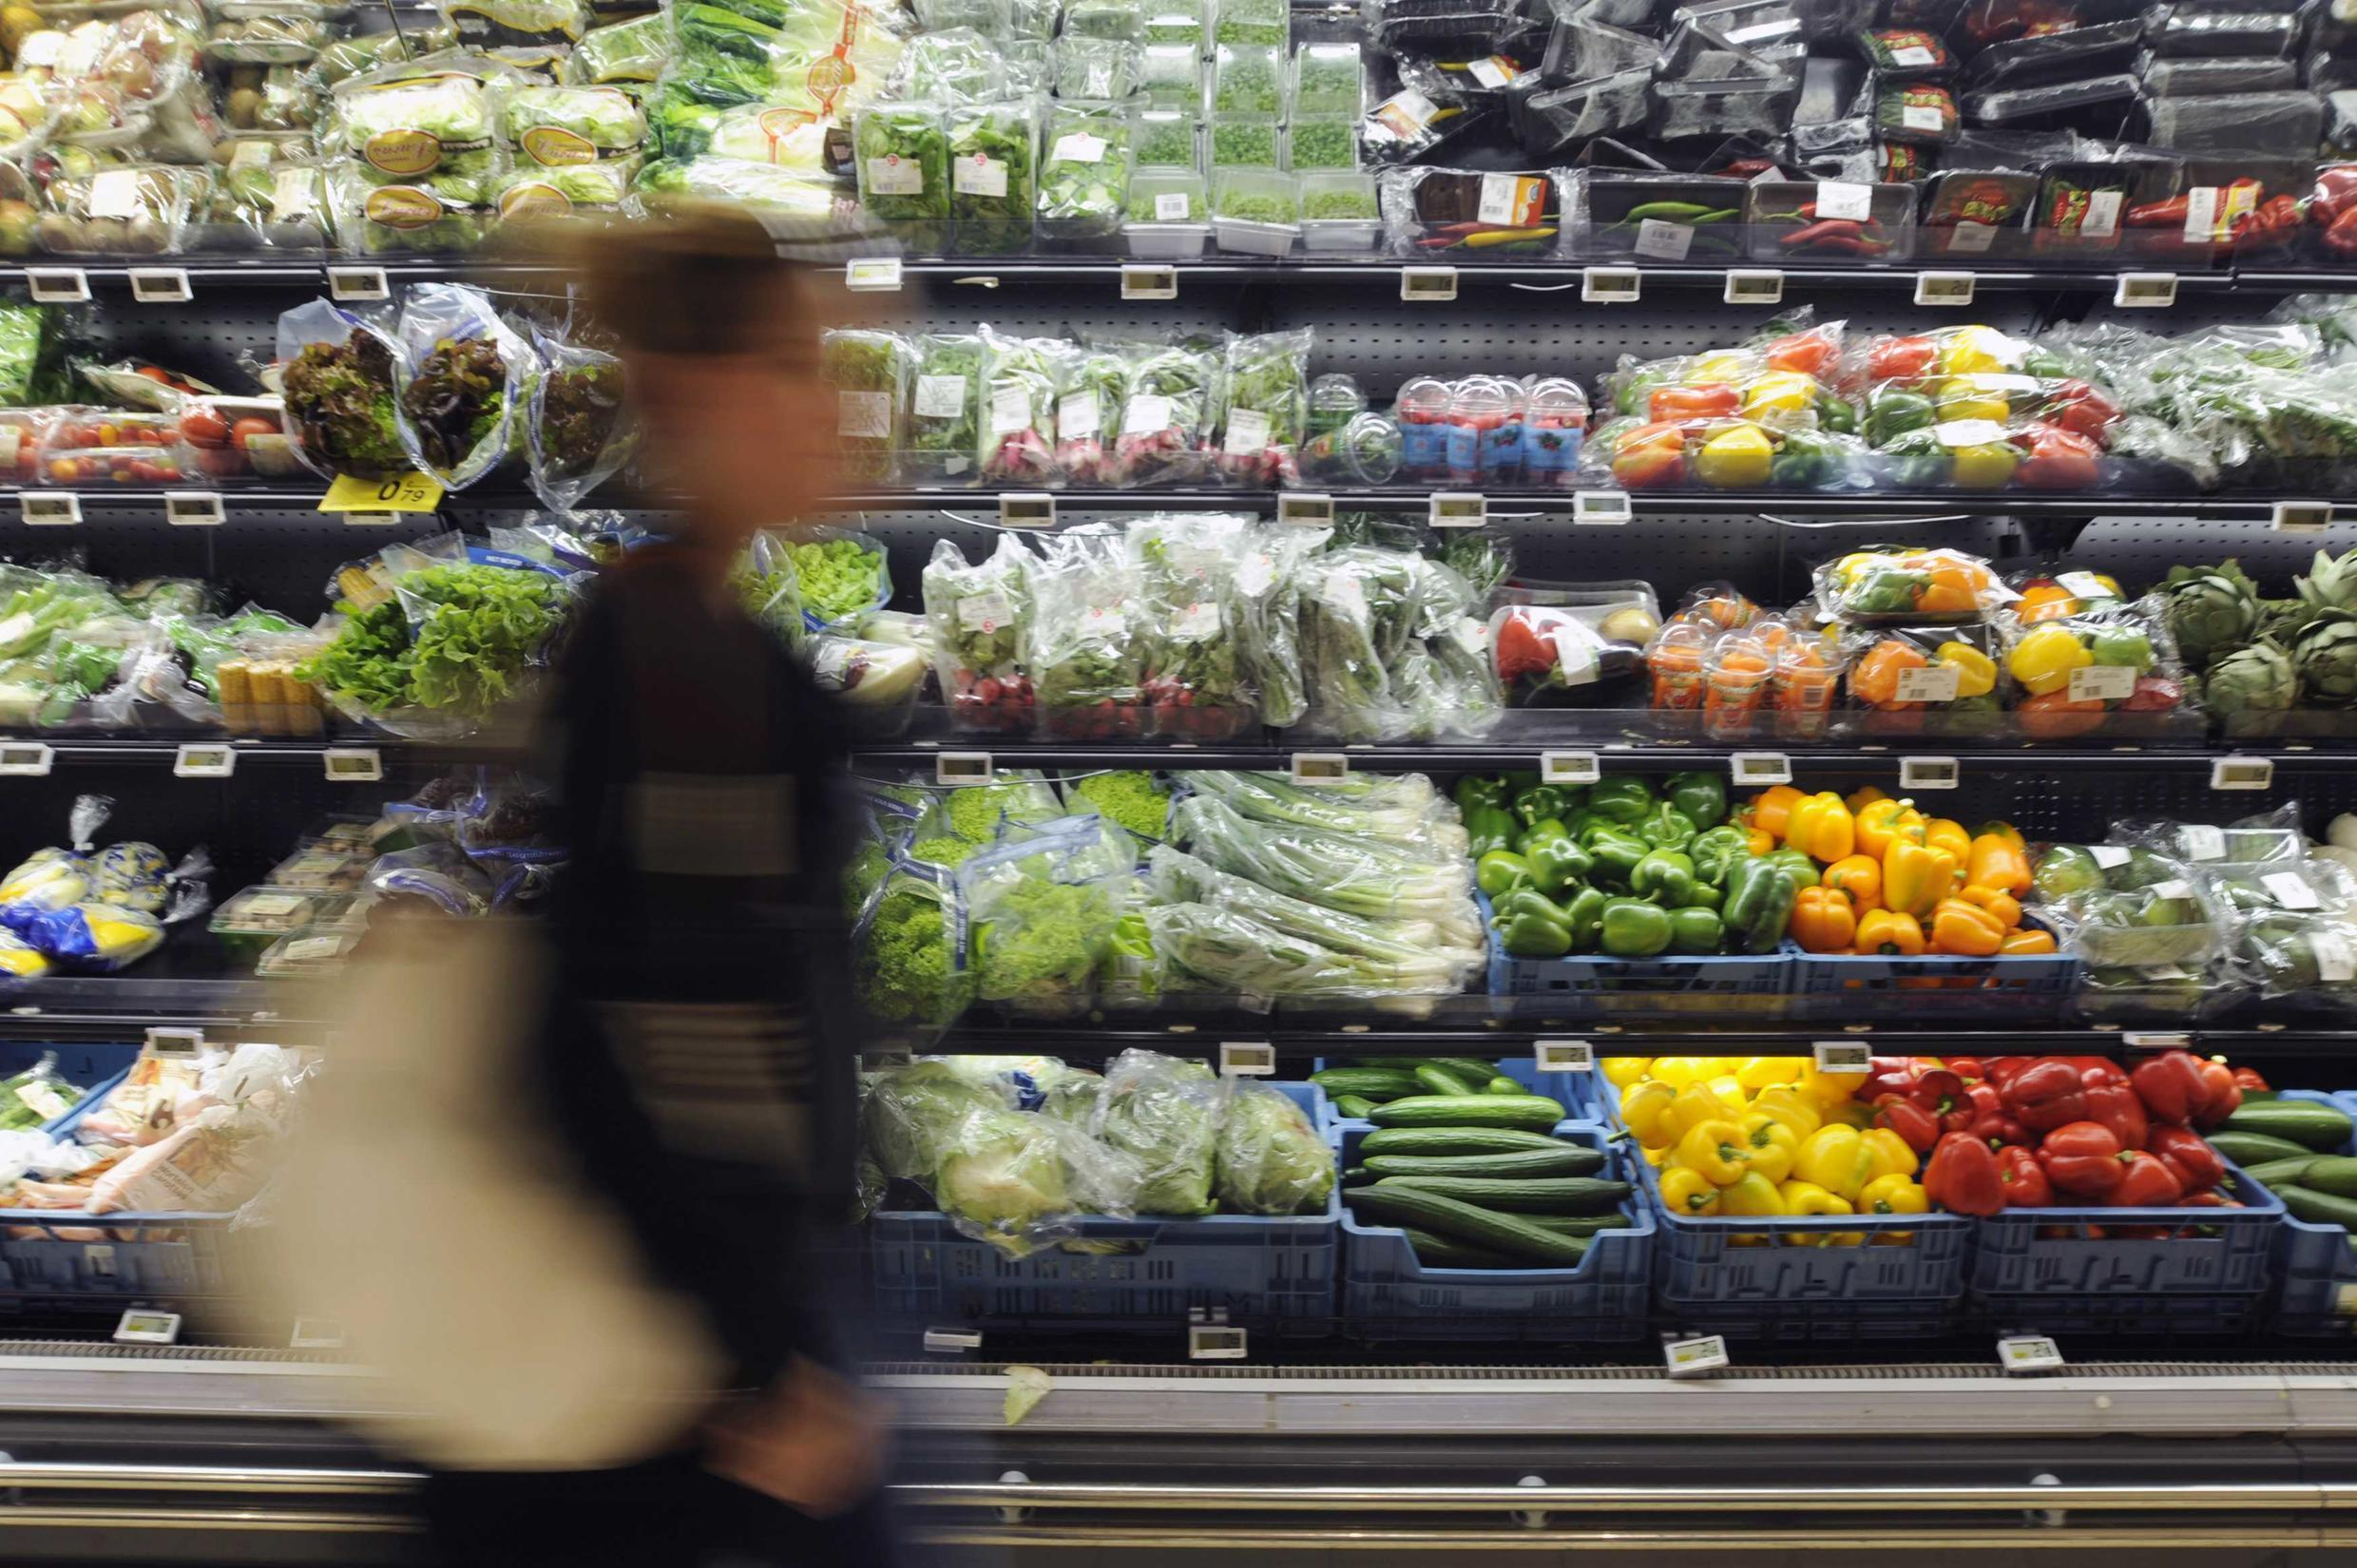 Many fruits and vegetables in French supermarkets are sold wrapped in plastic. As of January 2022, the packaging will be phased out.